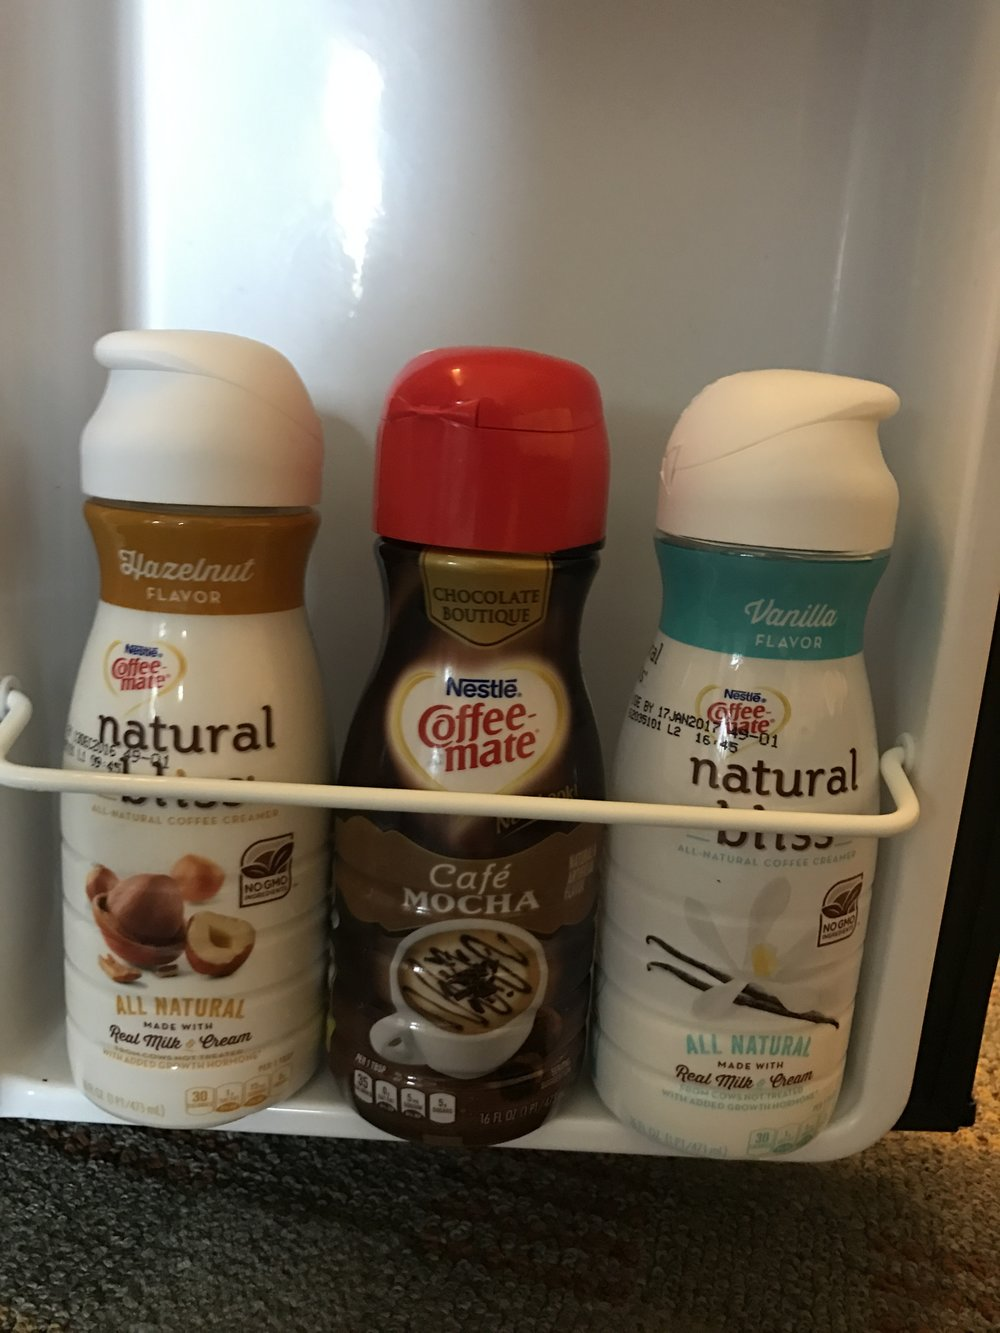 The collection of cream I brought for my coffee. You just never know what mood you'll be in when you wake up in the mornings.